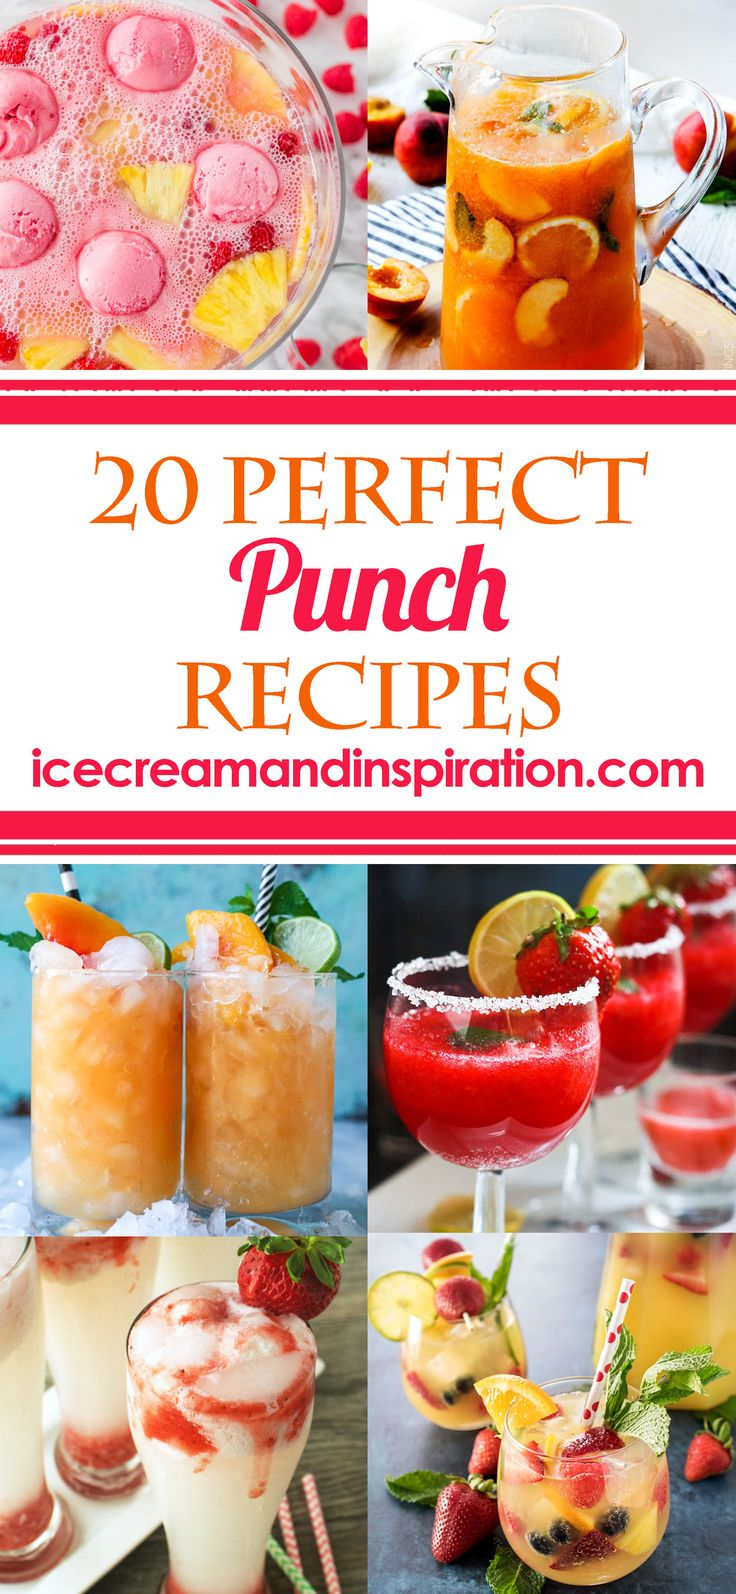 20 Perfect Punch Recipes